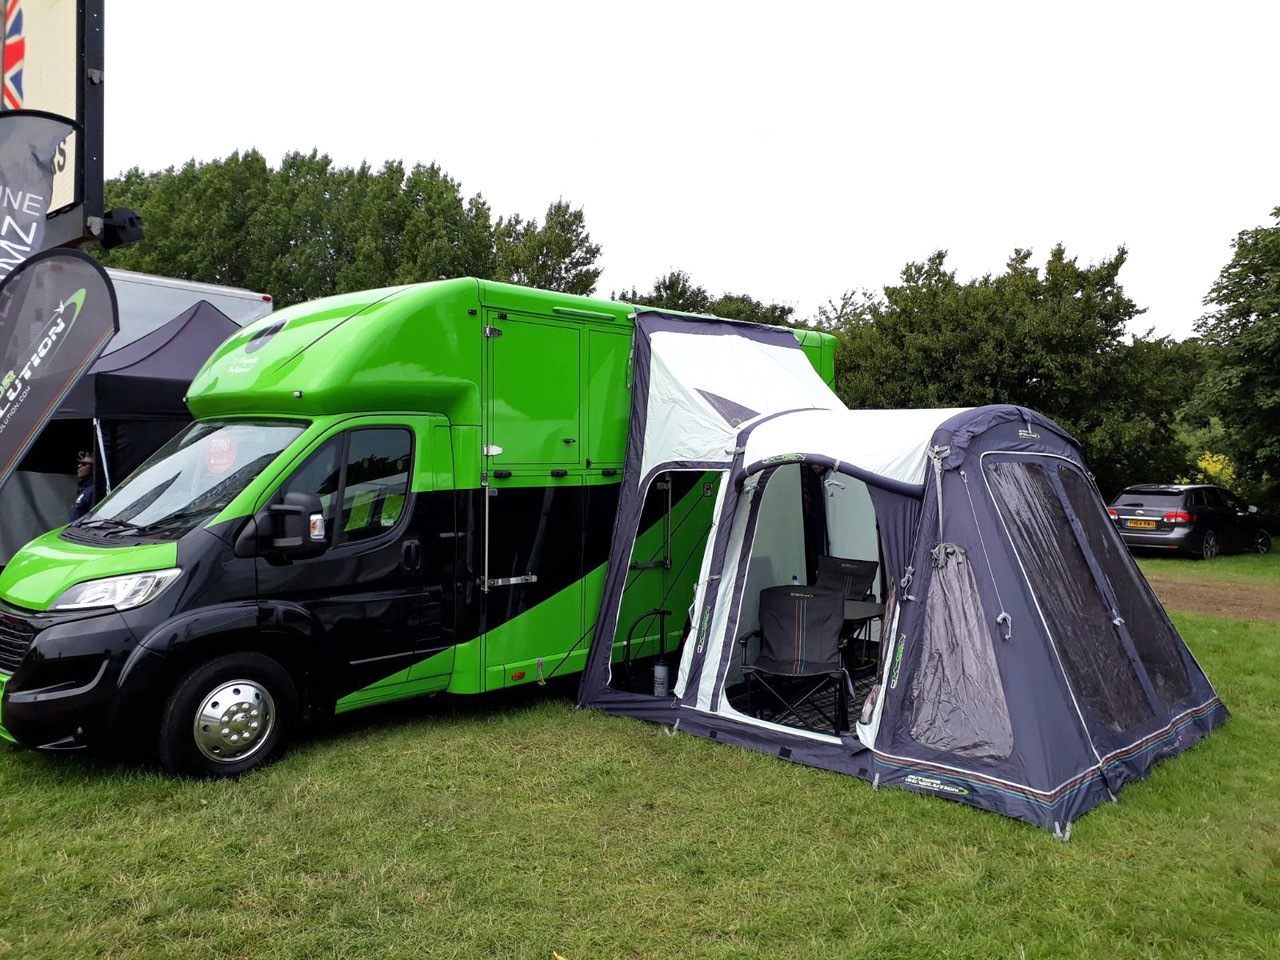 Outdoor revolutions range of awnings for horseboxes and ...